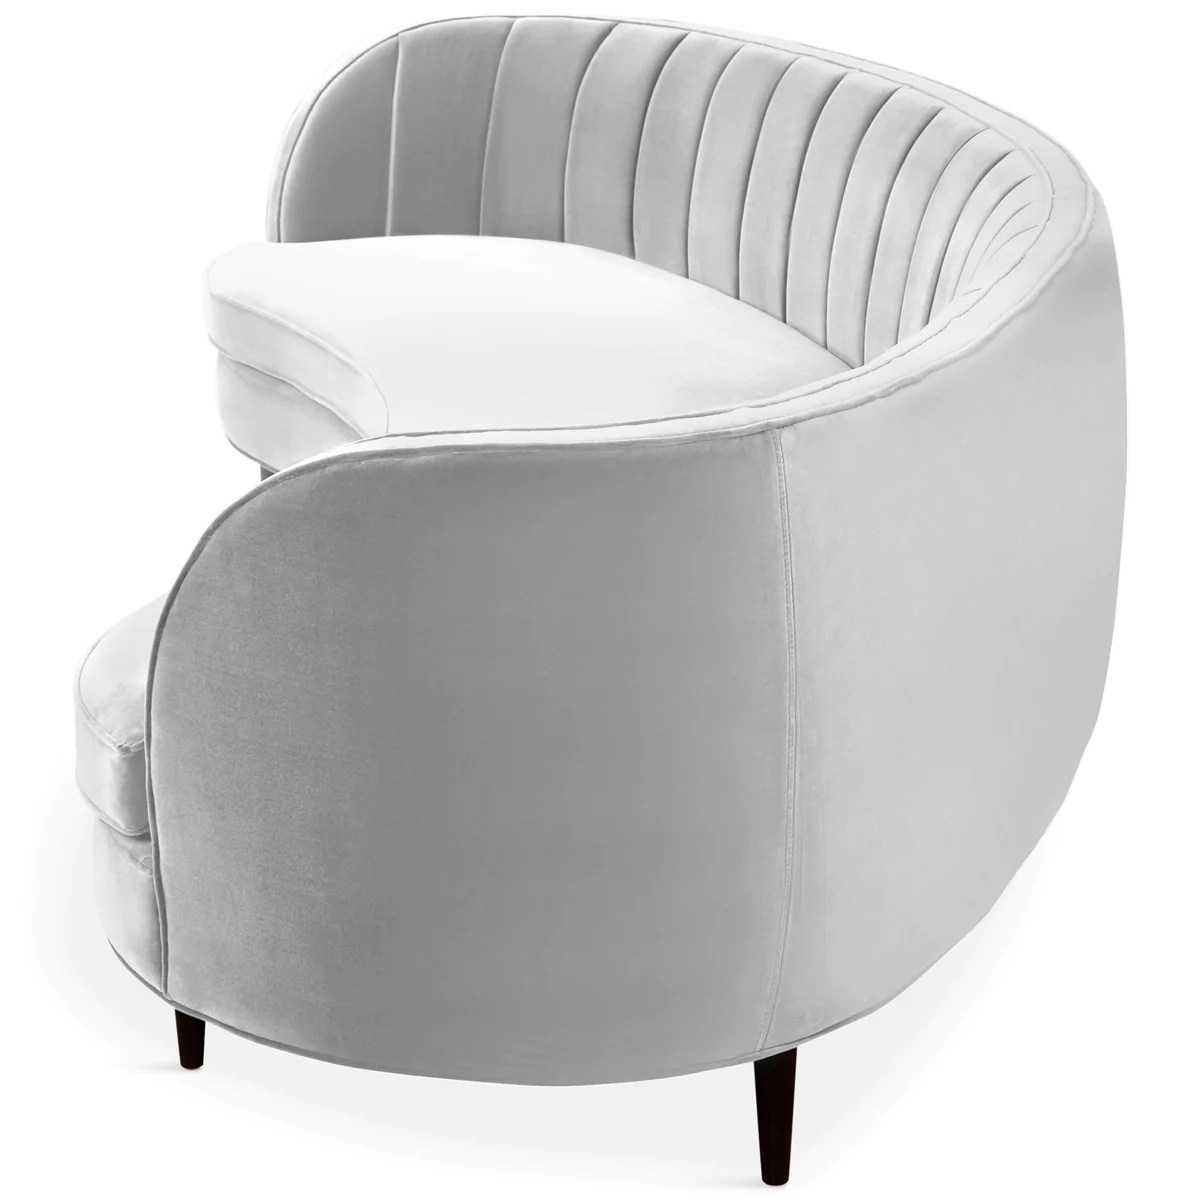 St Tropez 2 Curved Sofa With Channel Tufting Modshop